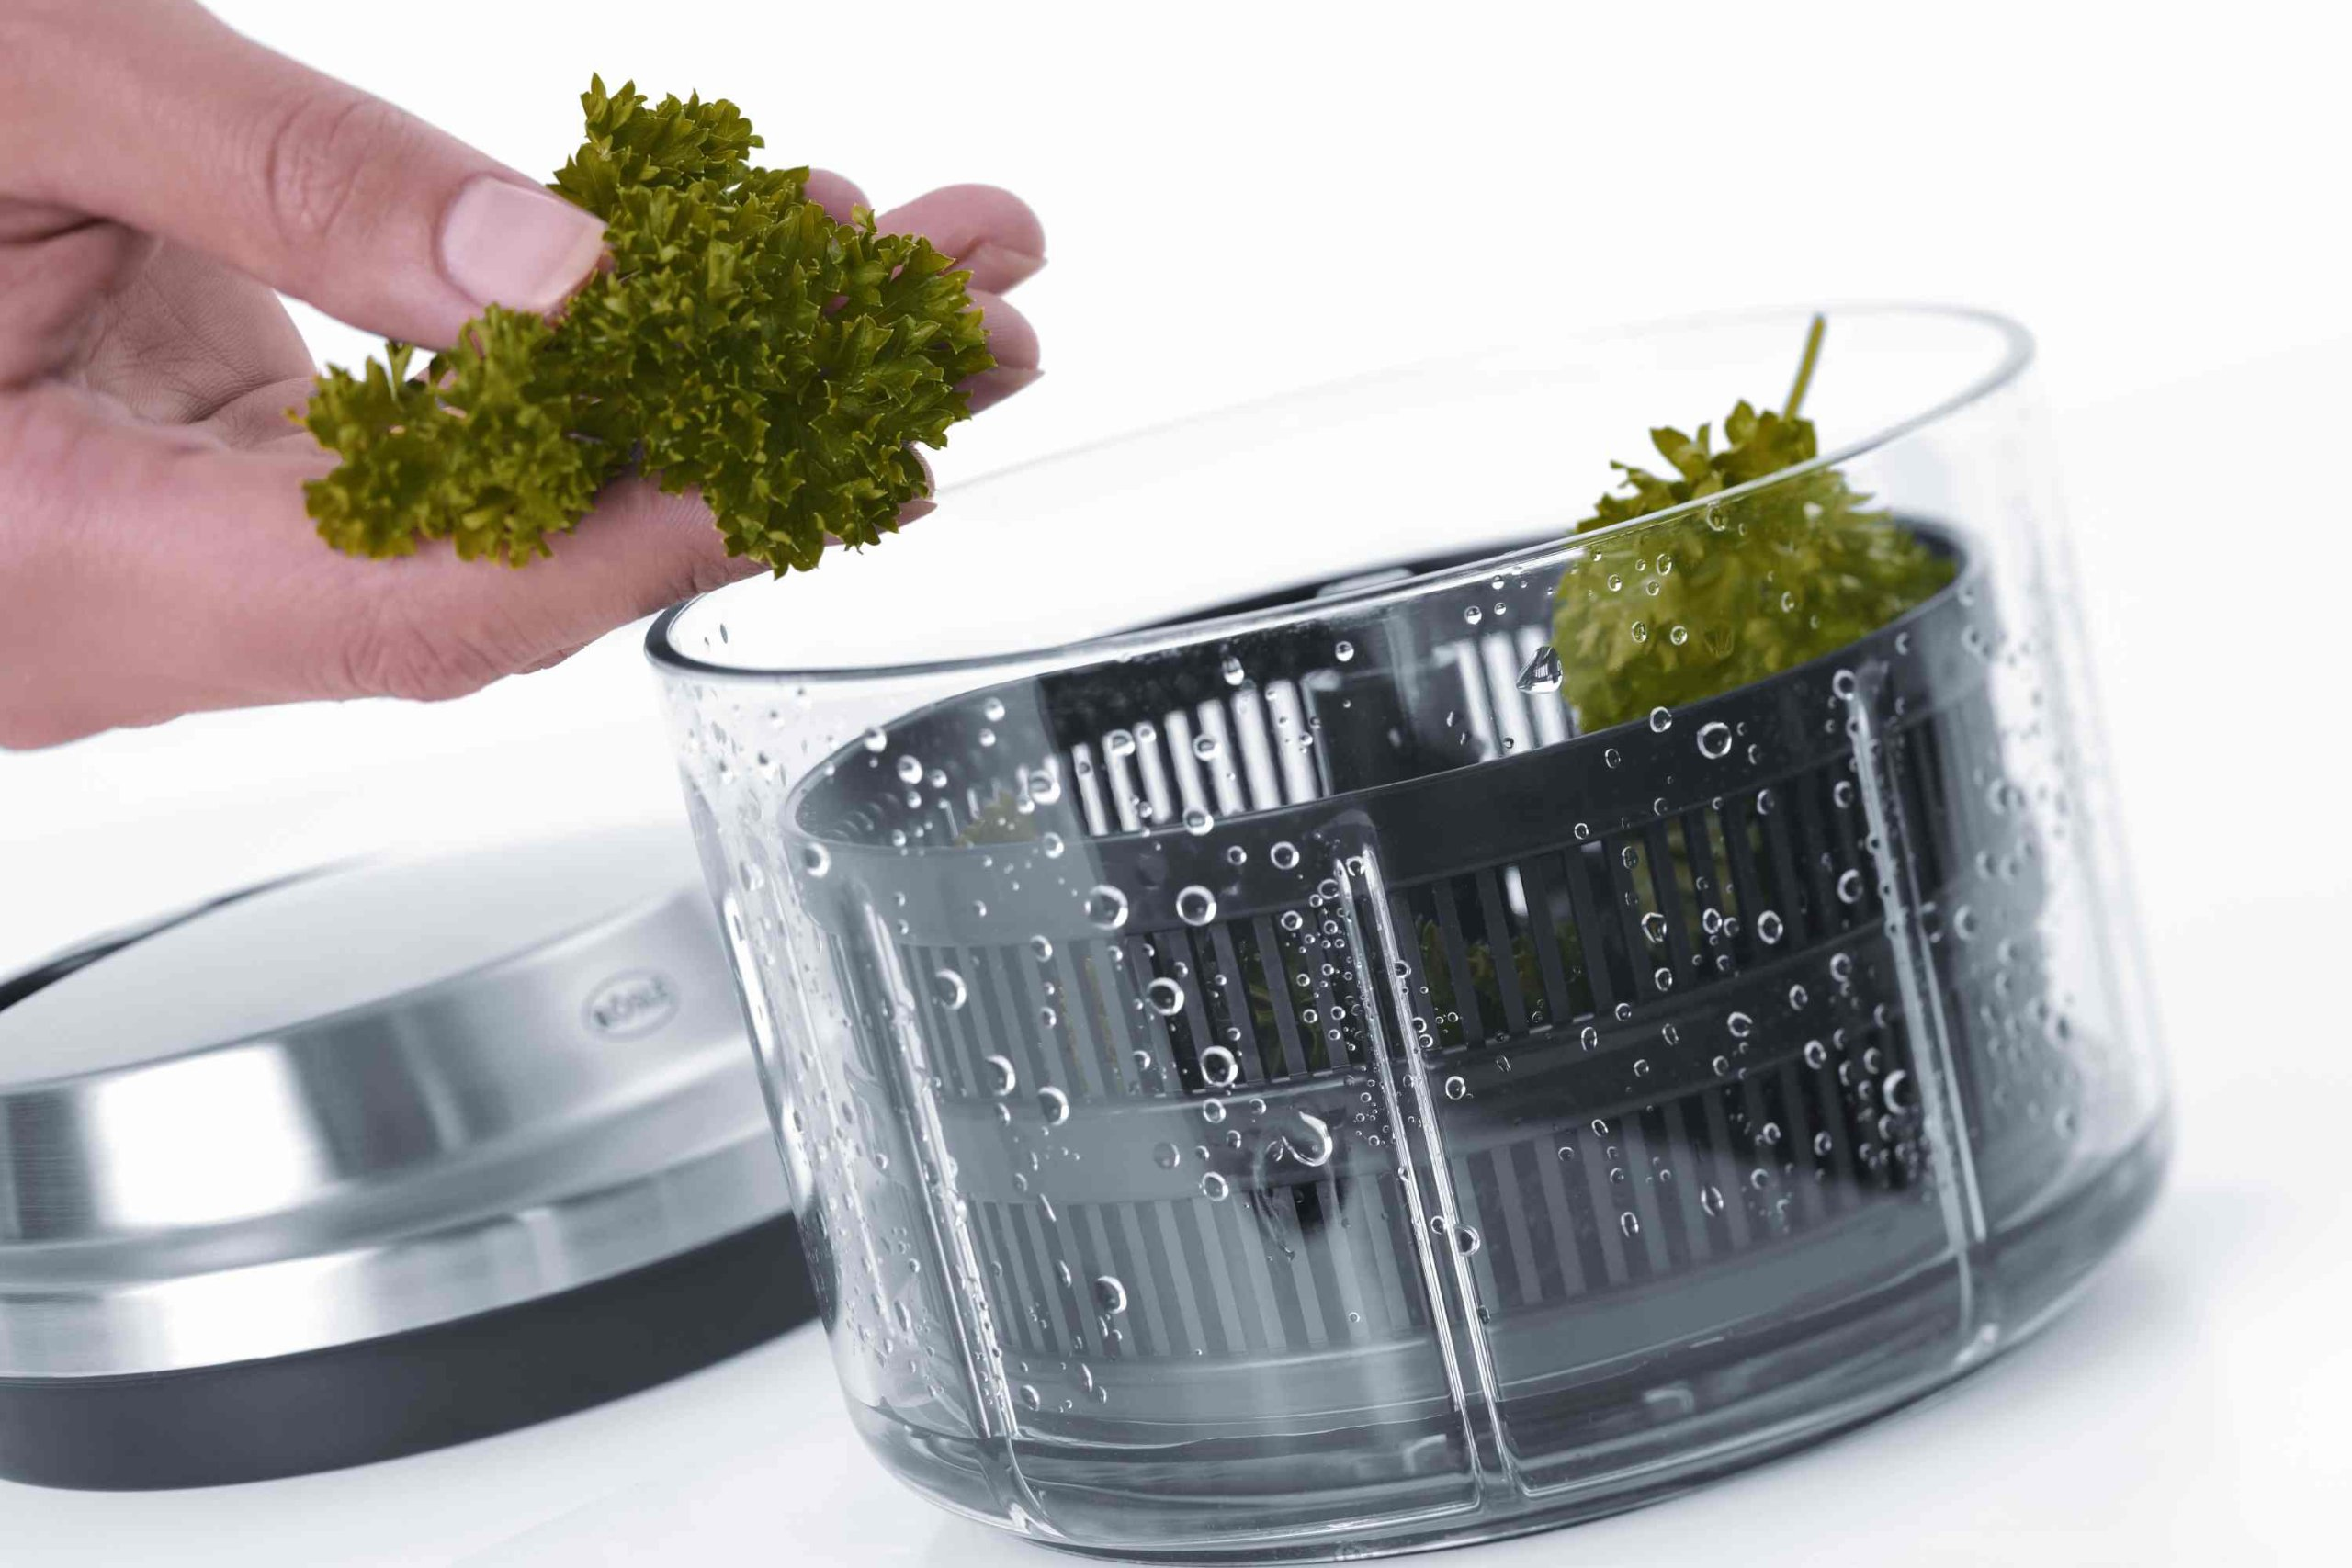 Rösle Manual Multi-Cutter with Spin-Drying Herbs Basket by Rosle (Image #6)